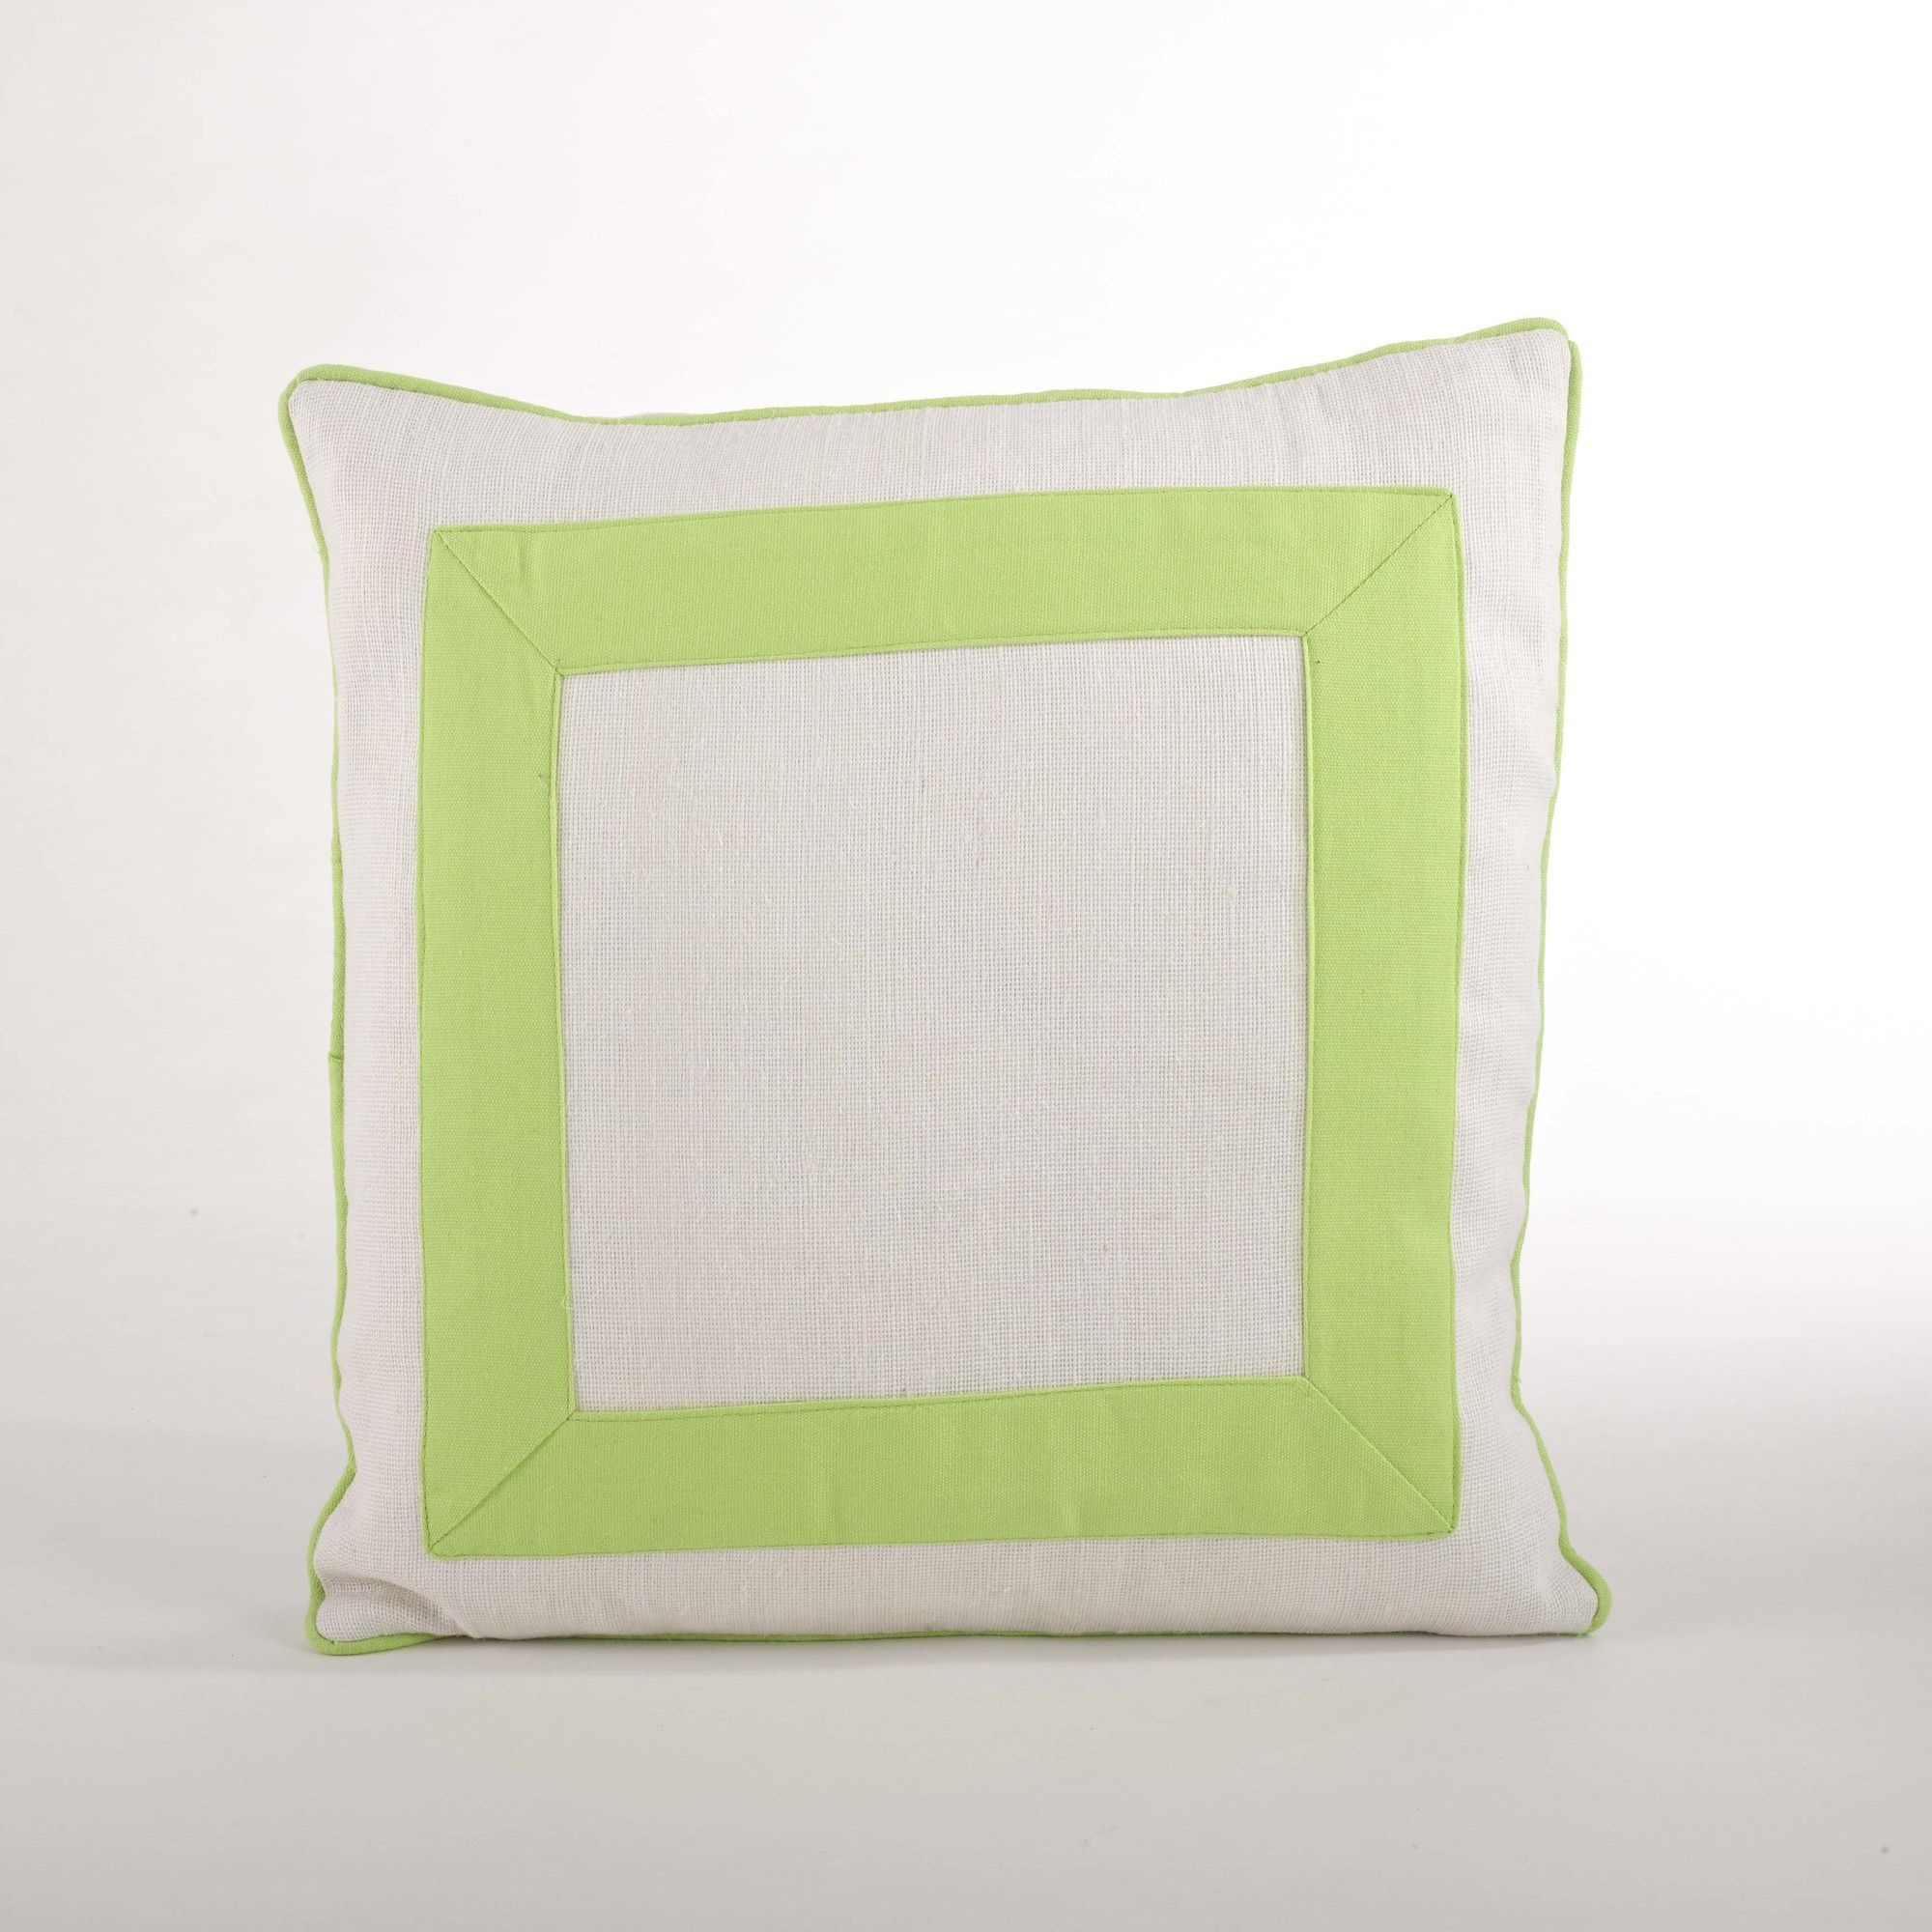 Crete Banded Design Down Filled Throw Pillow